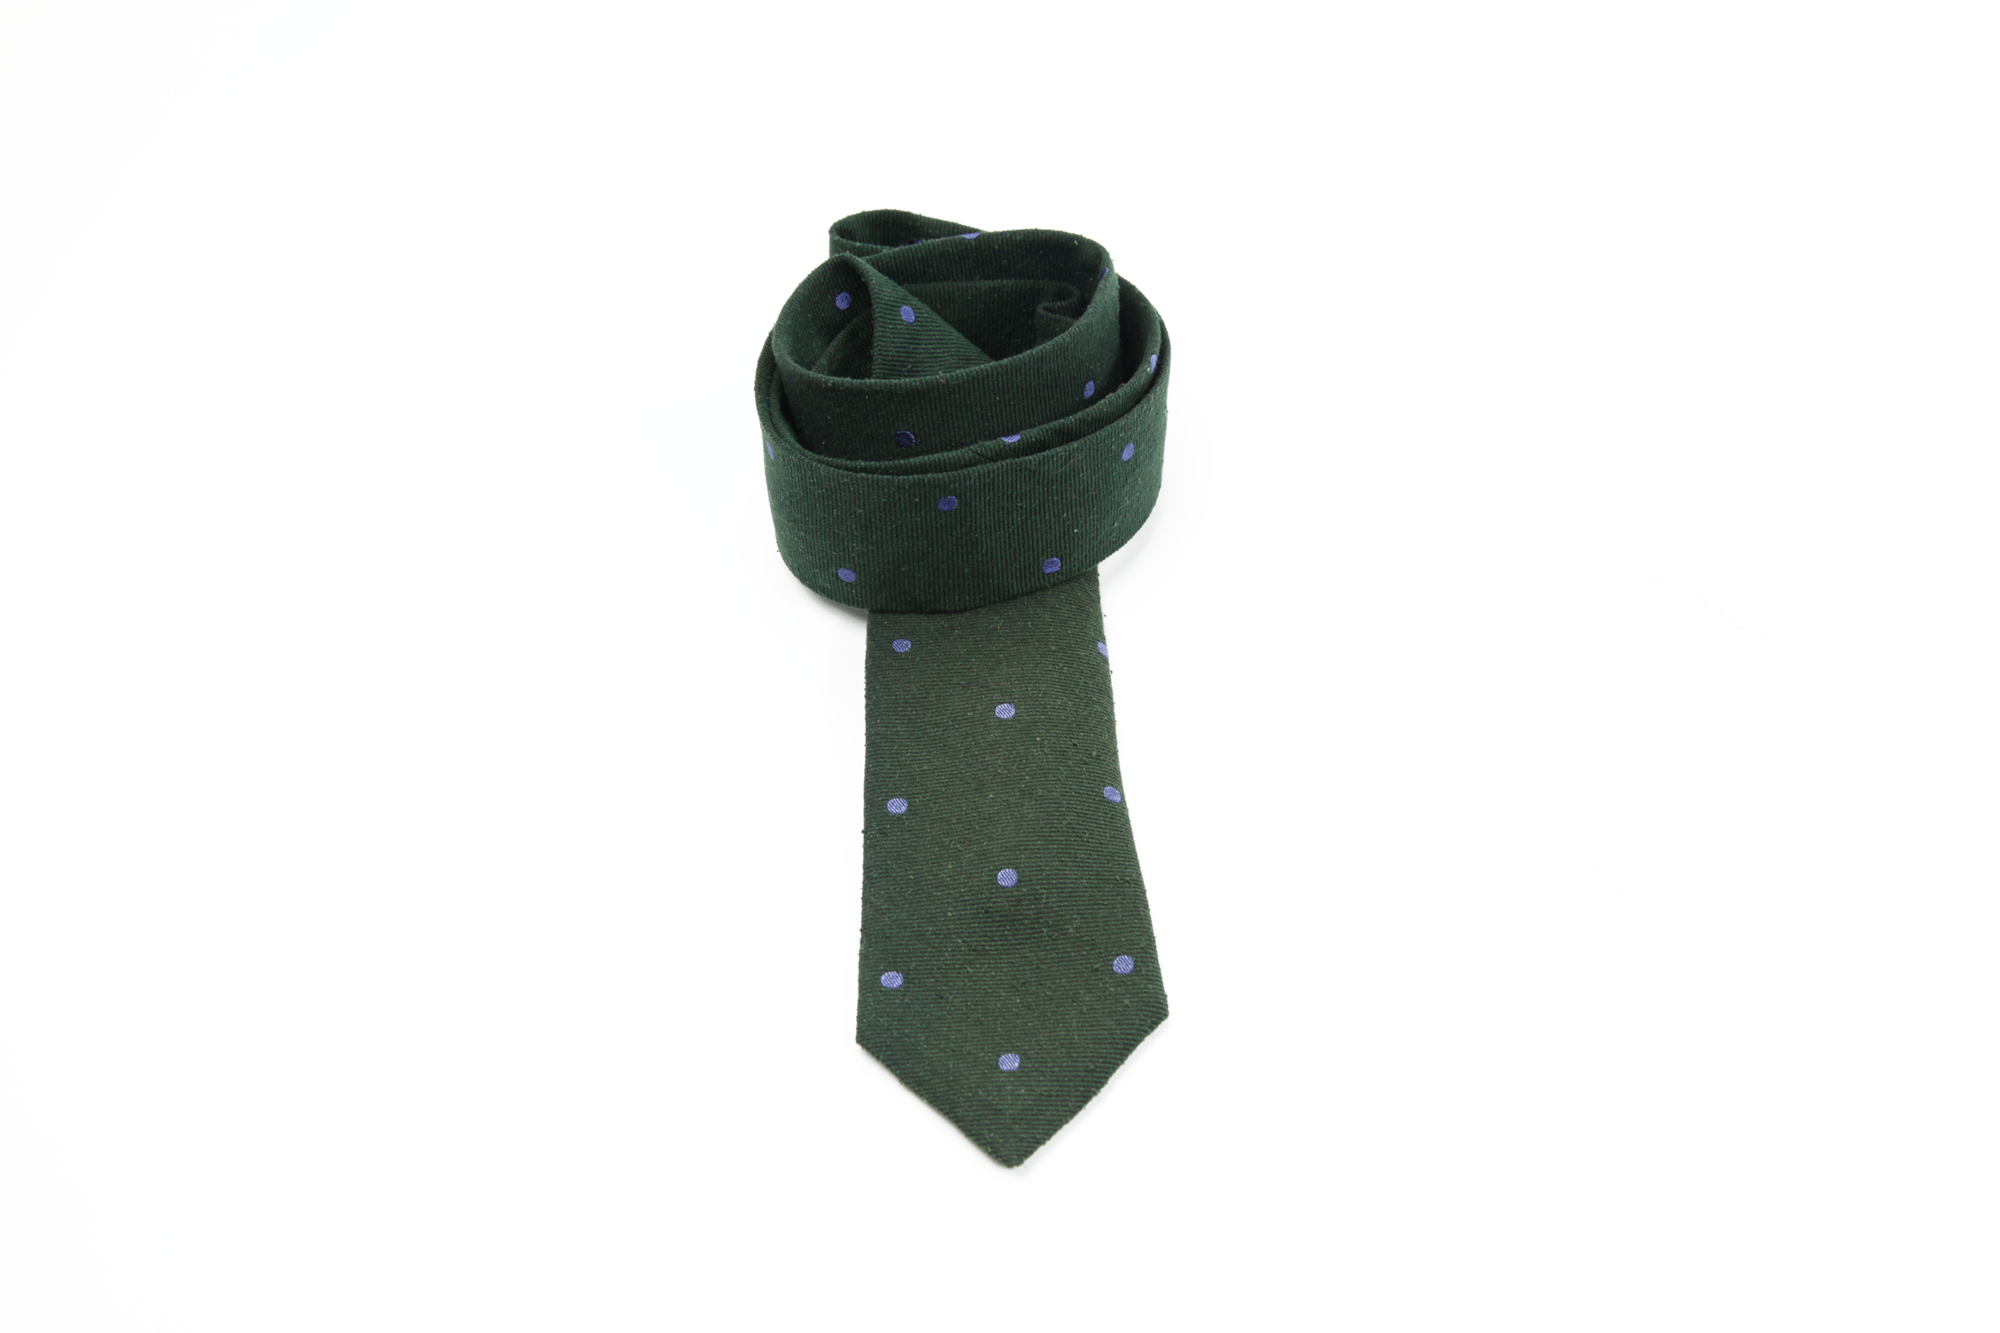 The Rosen Necktie